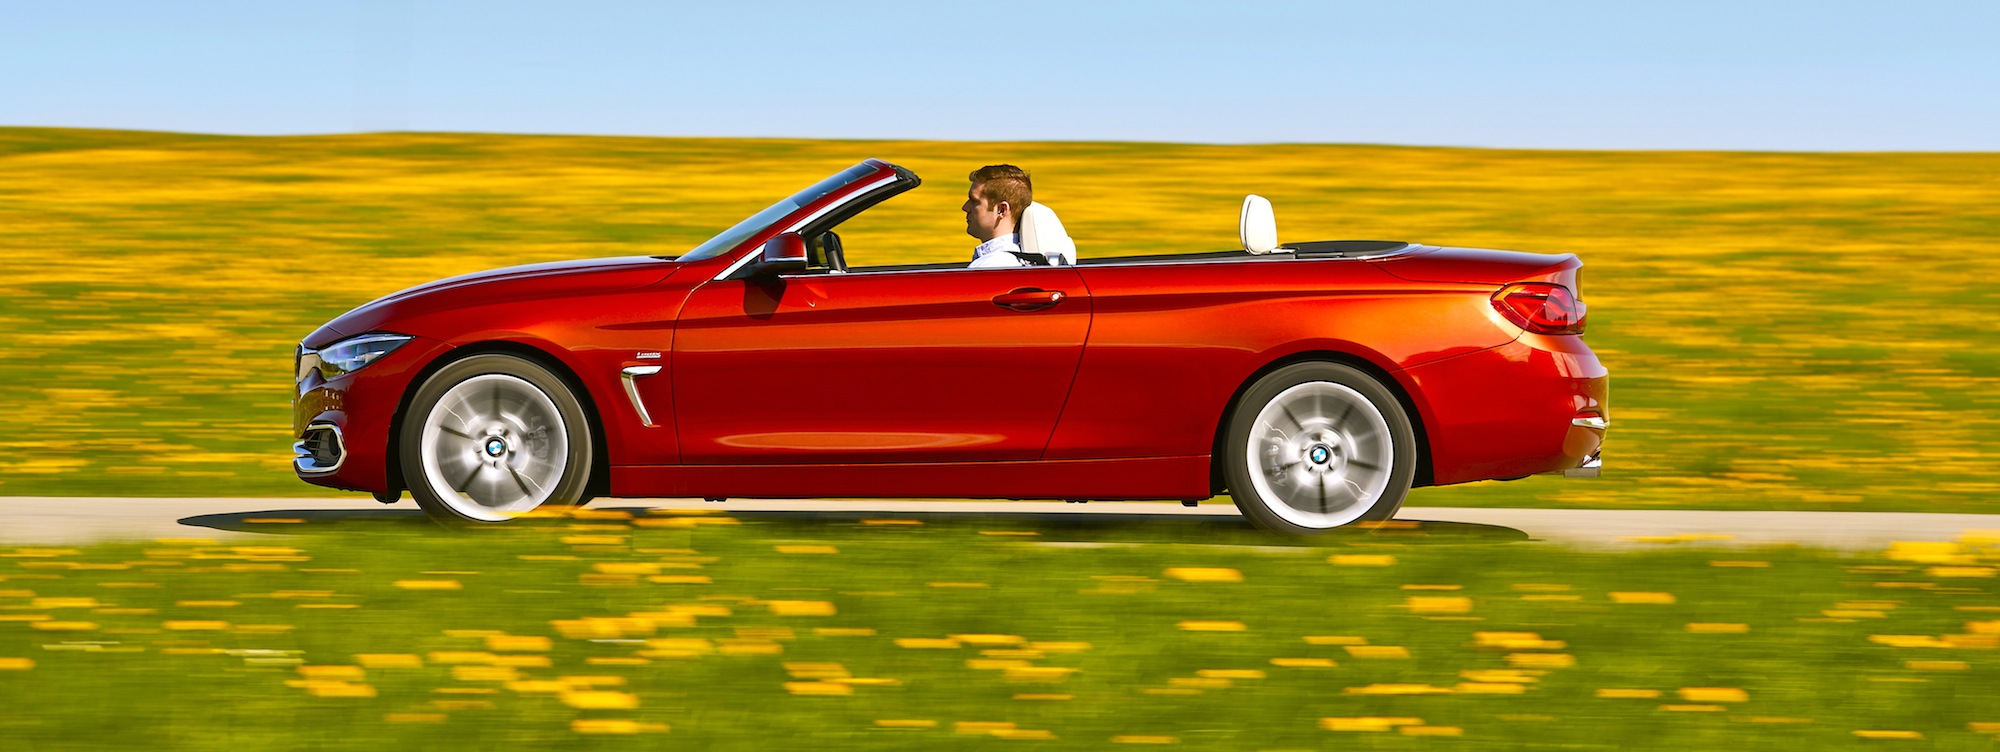 8 Of The Best BMW Convertible Lease Deals For January 2018